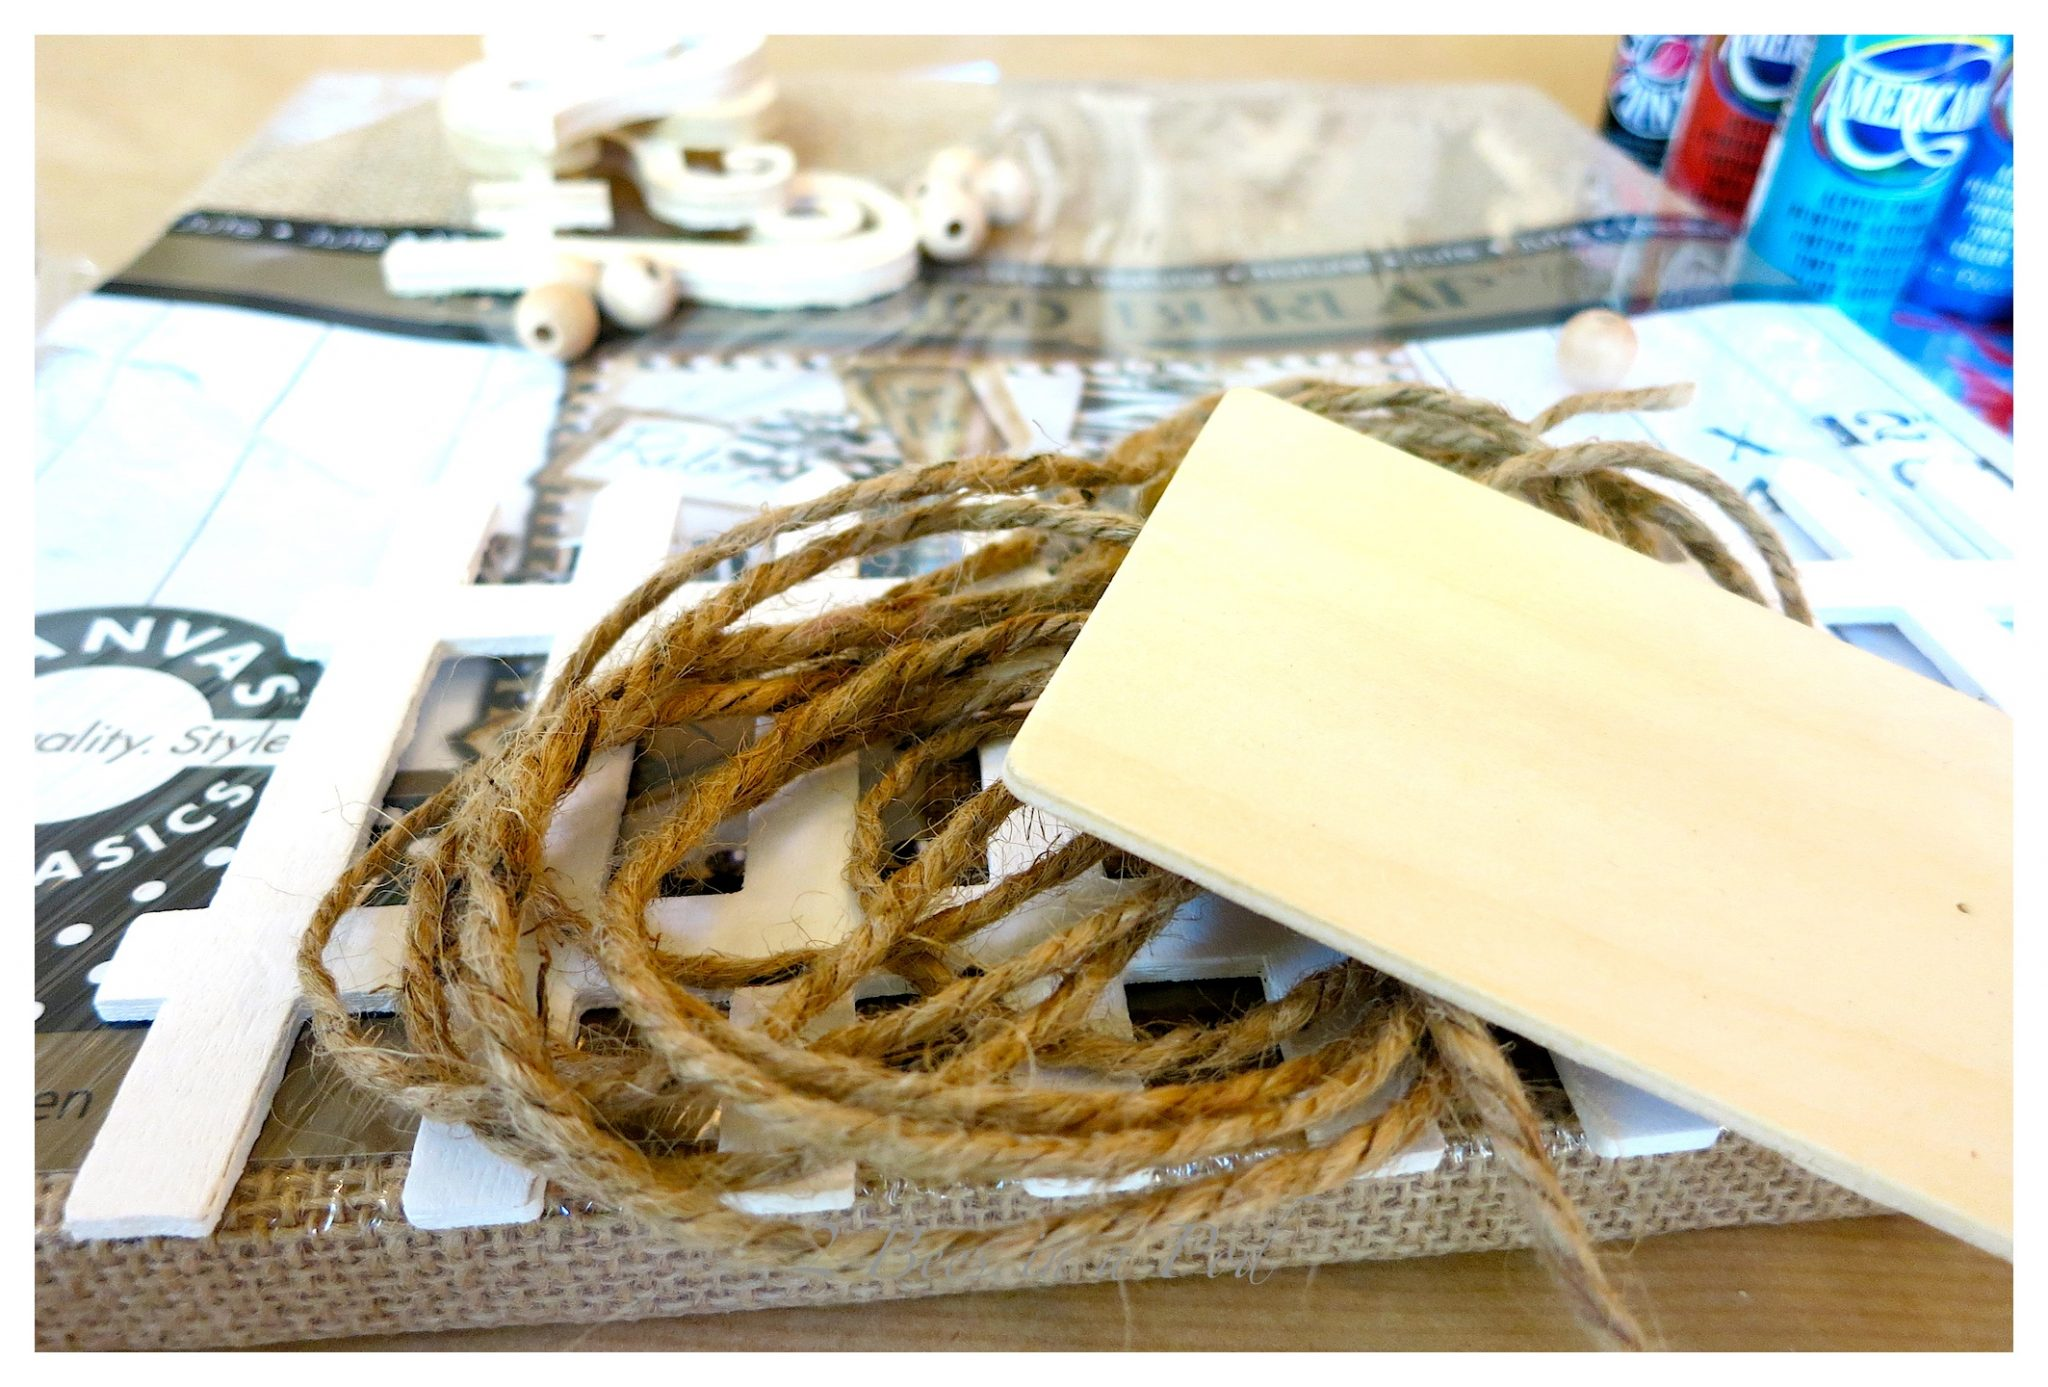 DIY Lake Wall Art - simple artwork using a wrapped burlap canvas, decorative wood pieces and paint. Ready to display your lake scene.